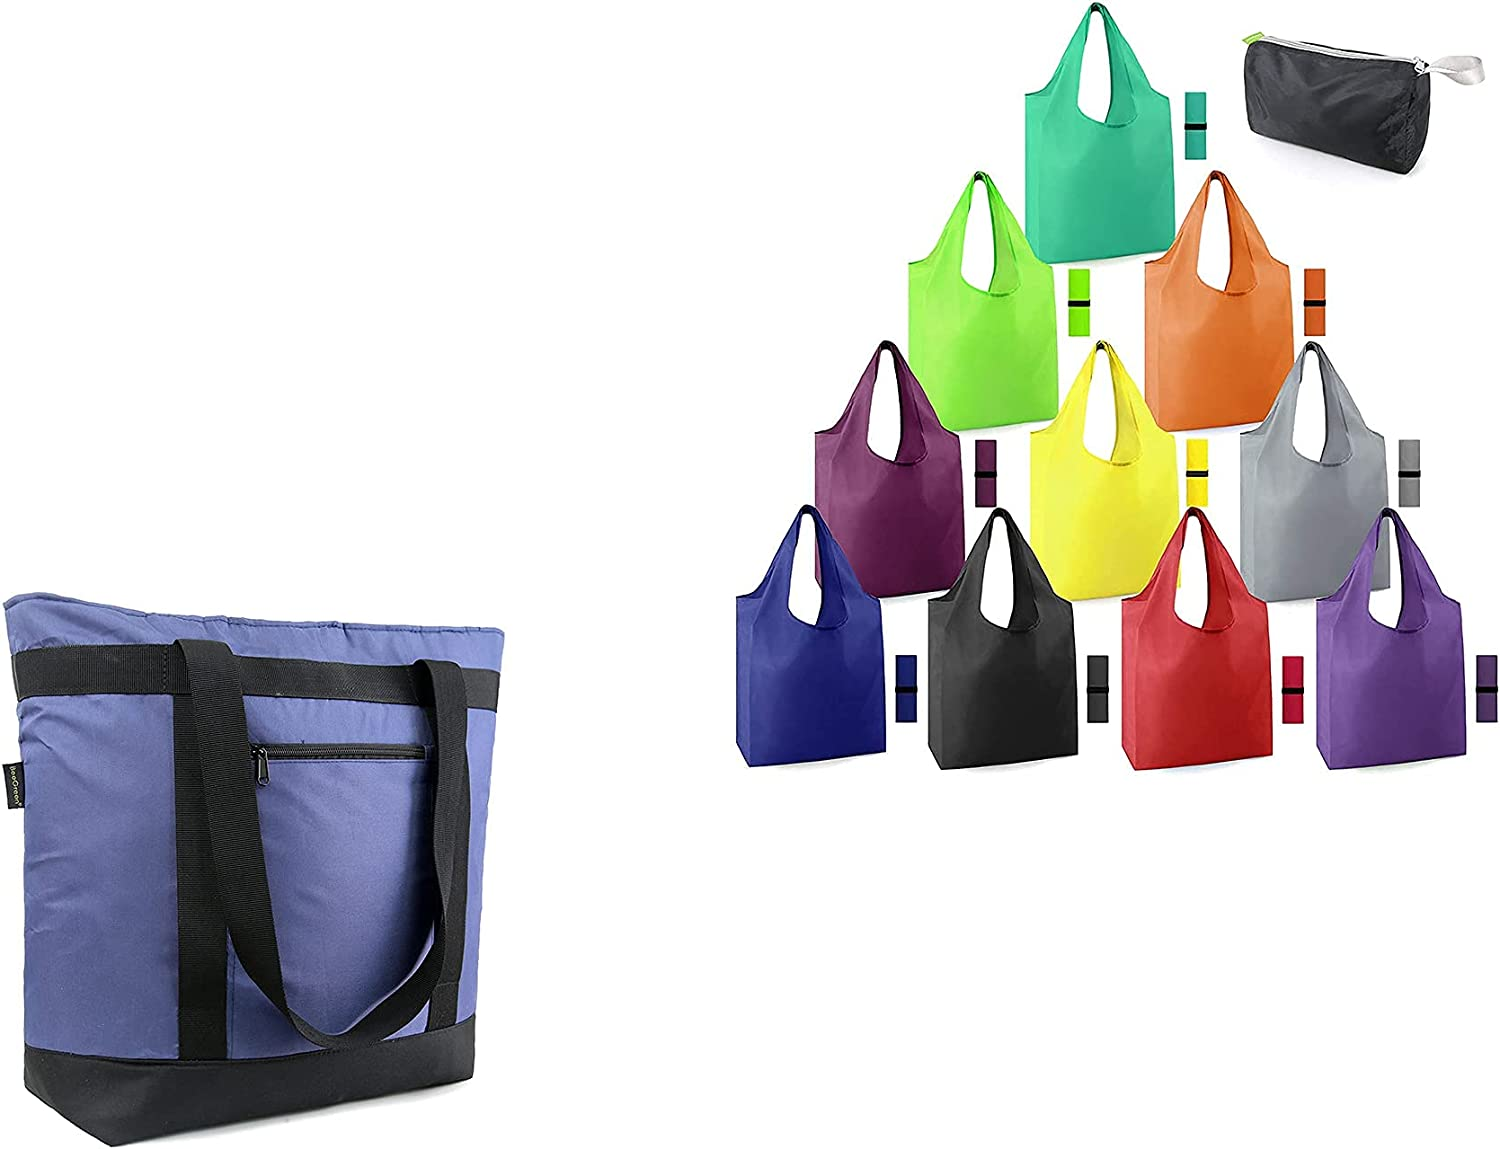 Reusable Grocery-Bags 10 Pack and Cooler Foldable-Re Piece 1 Manufacturer Animer and price revision OFFicial shop Bag